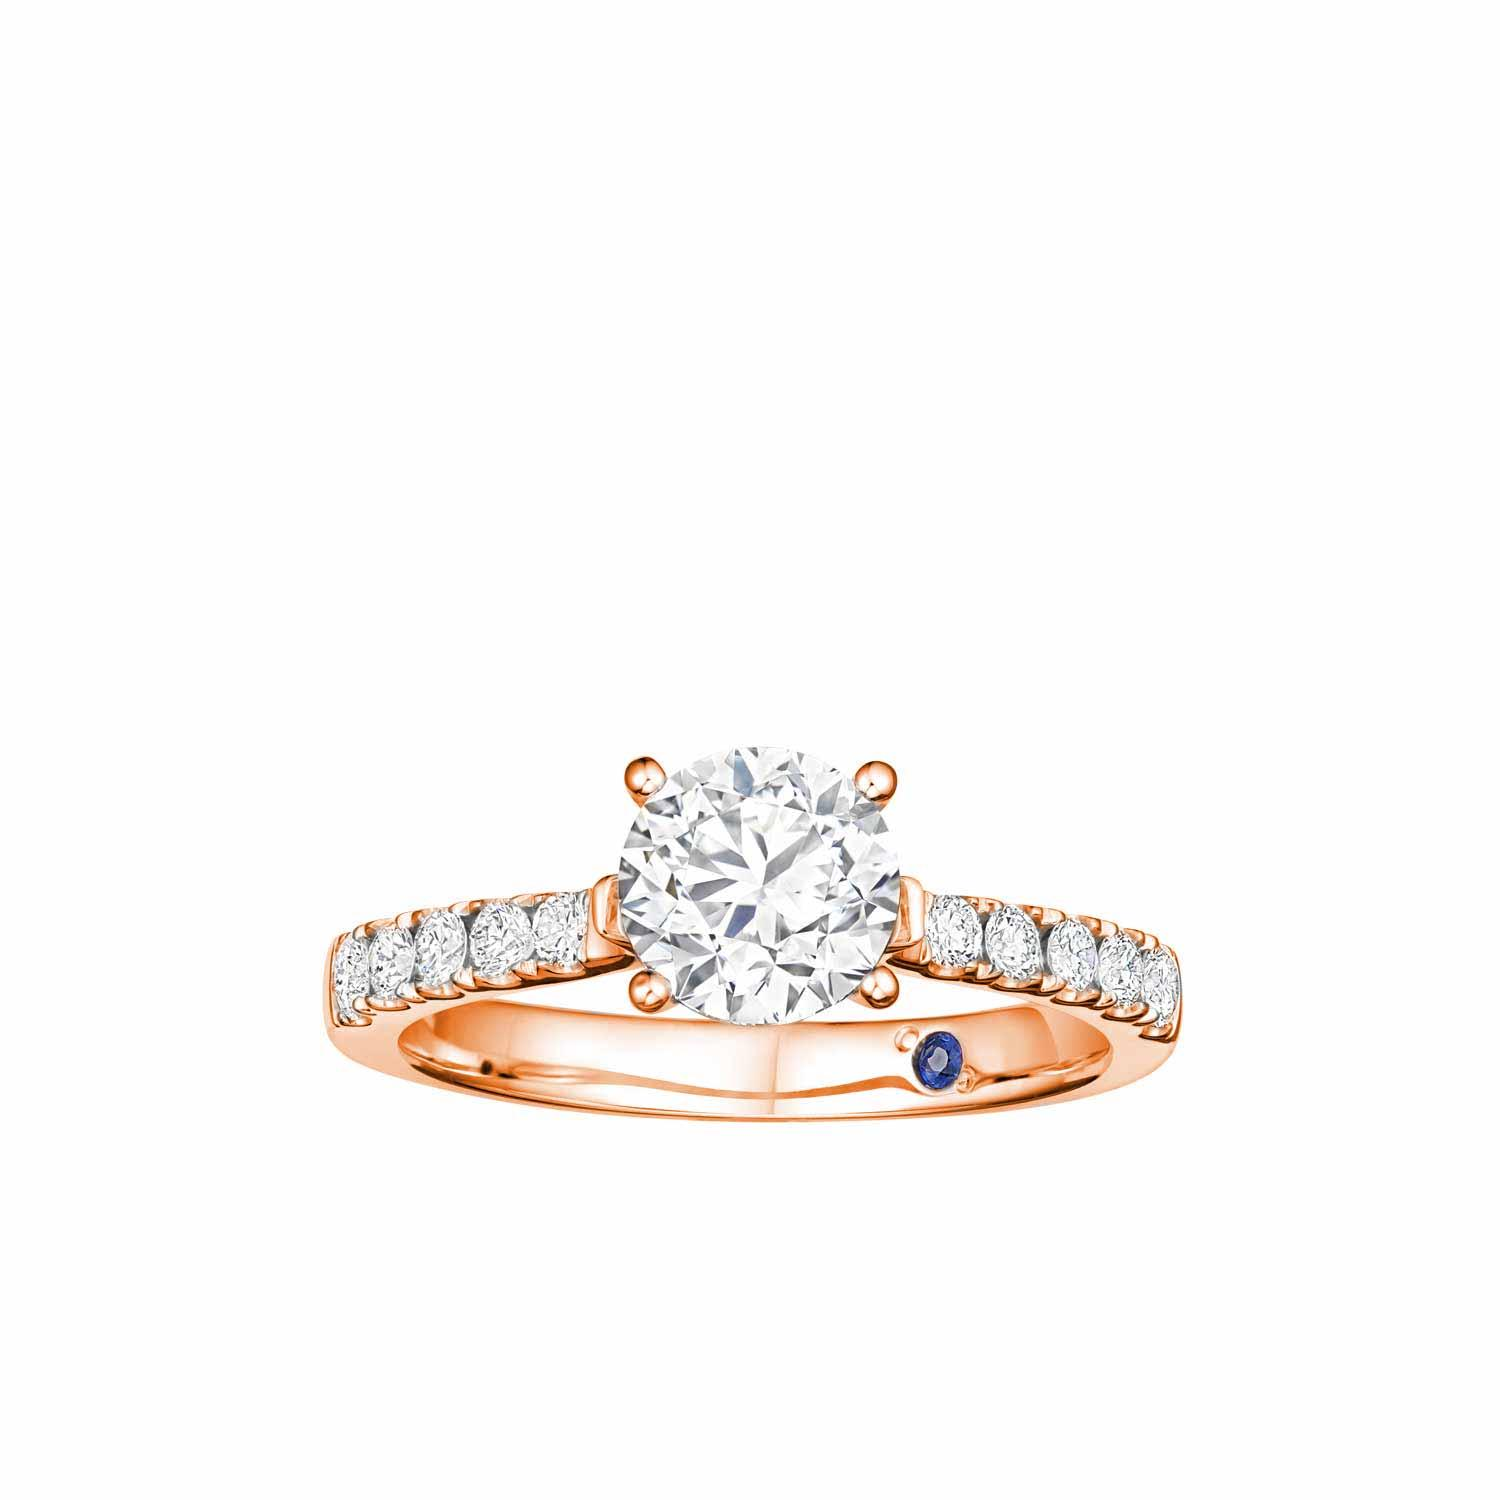 Goldheart Solitaire Diamond 14k Rose Gold Ring By Goldheart.